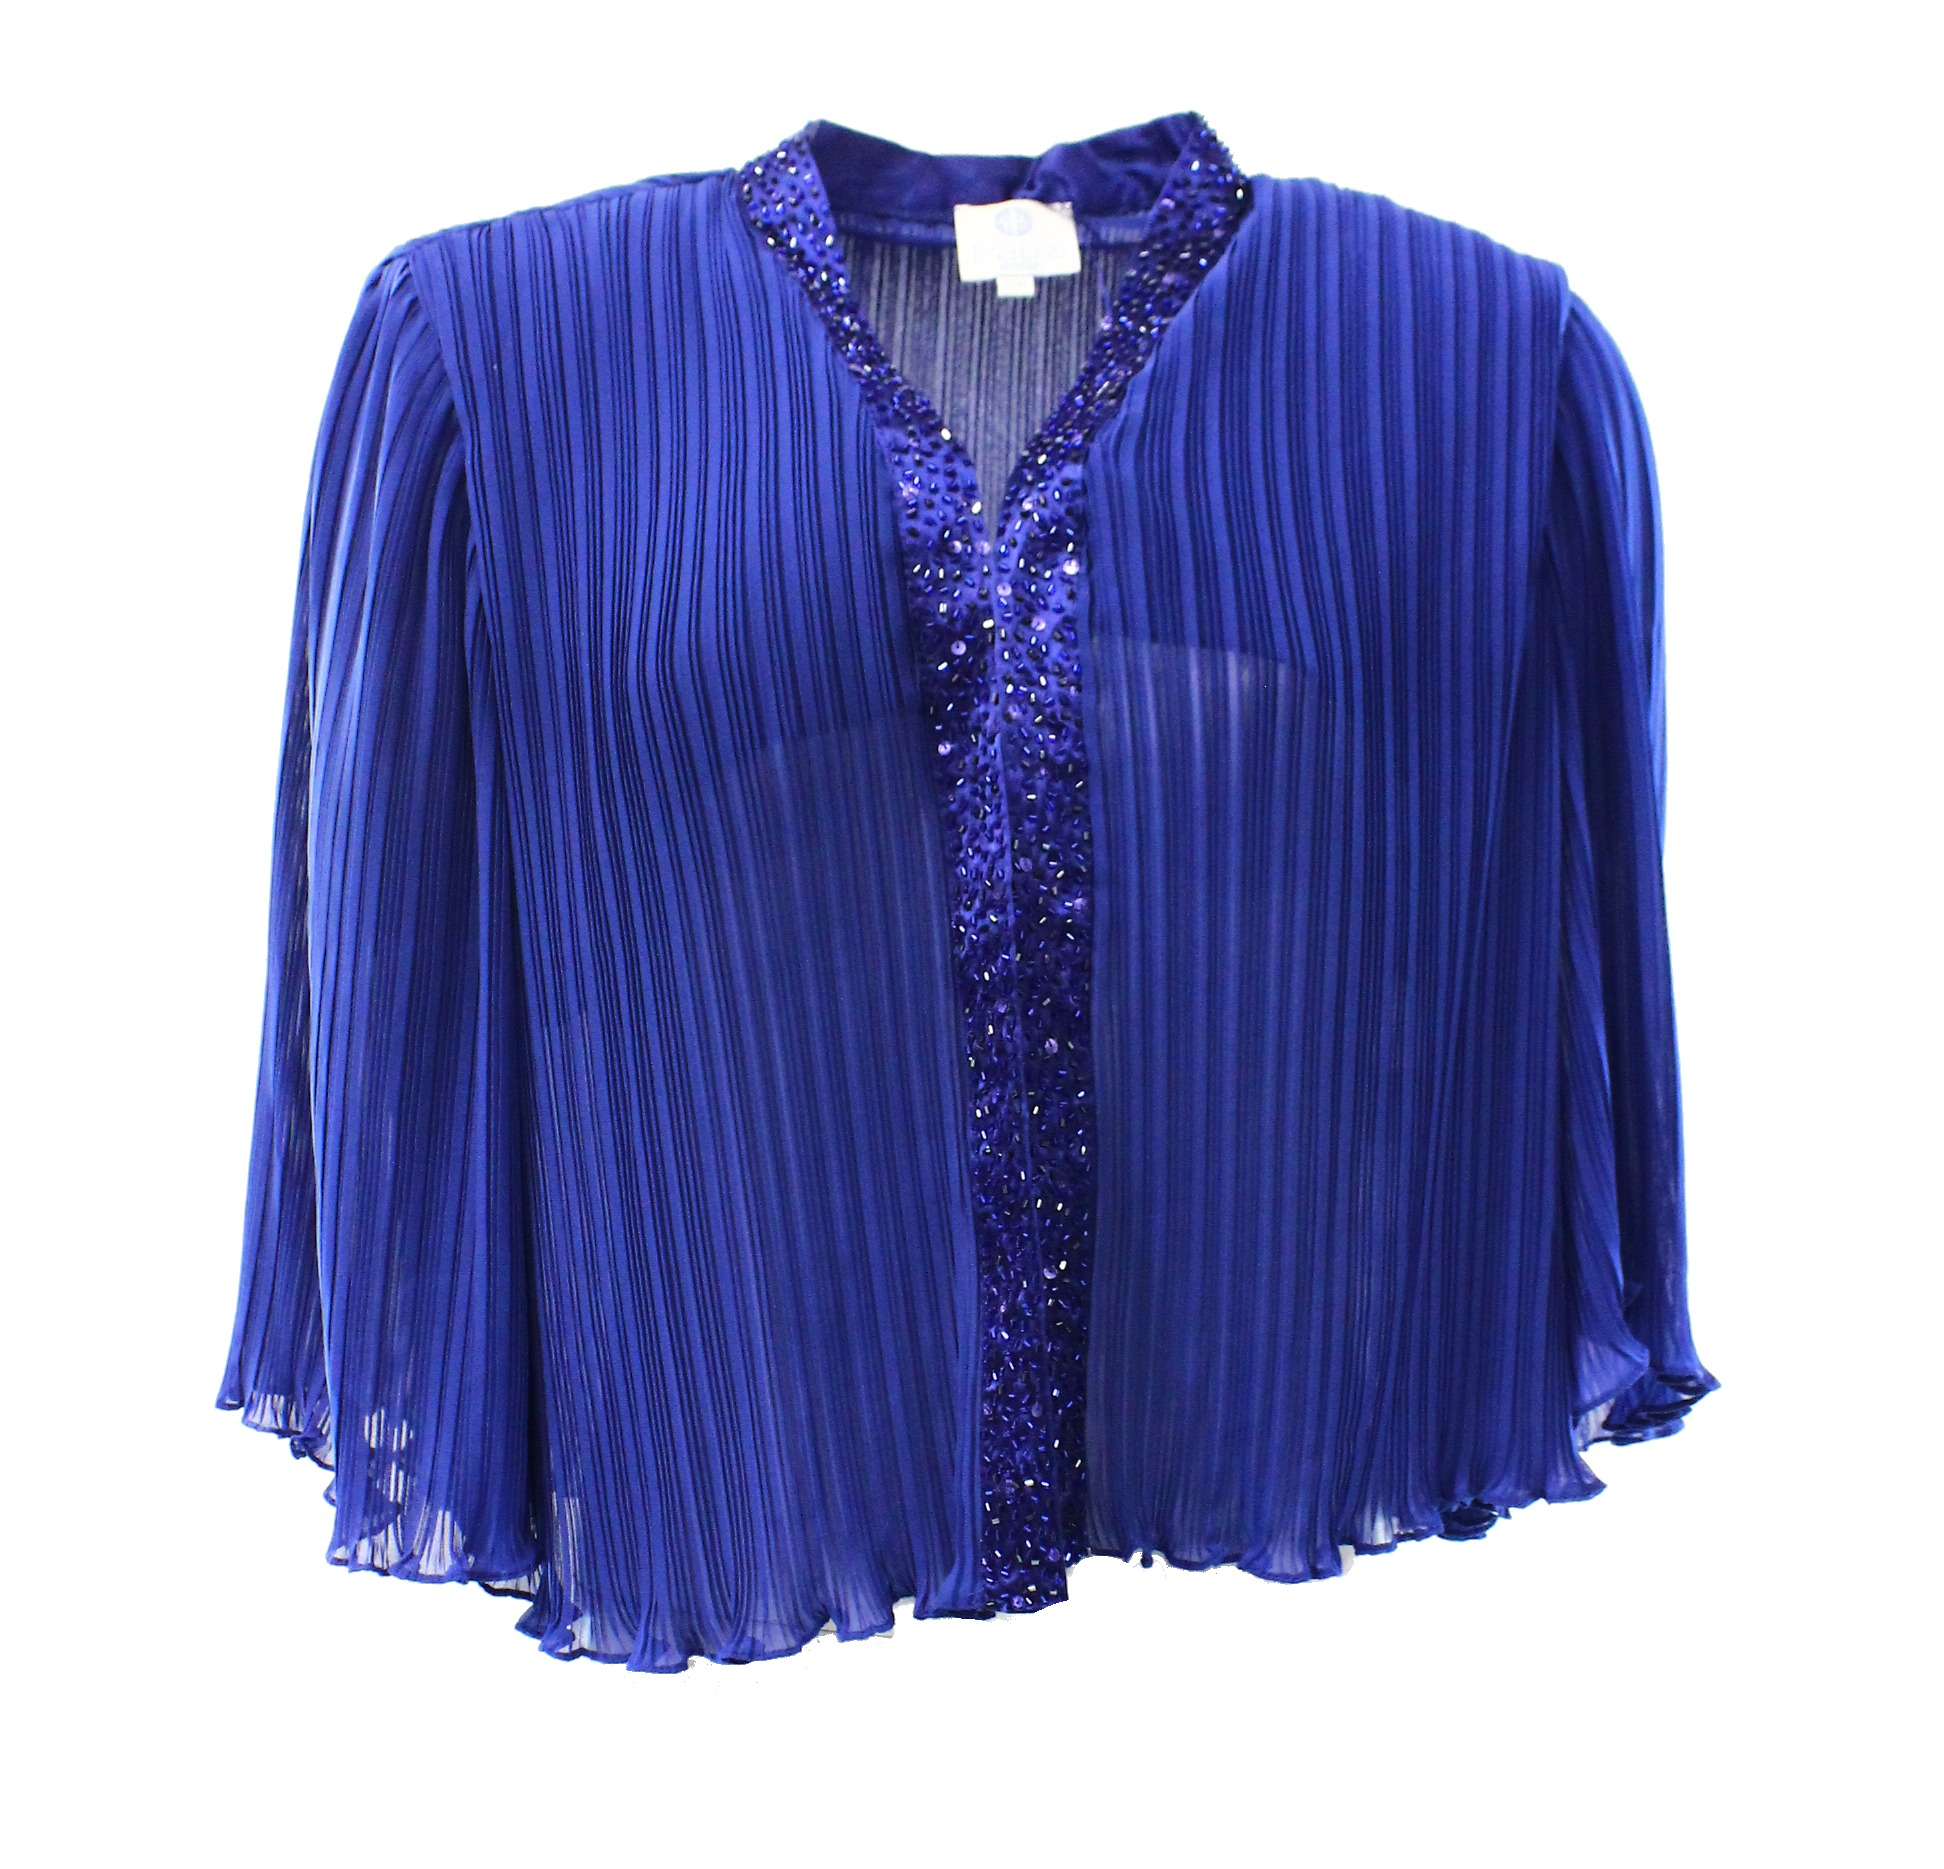 Patra NEW Blue Women's Size 16W Plus Bolero Shrug Embellished Jacket